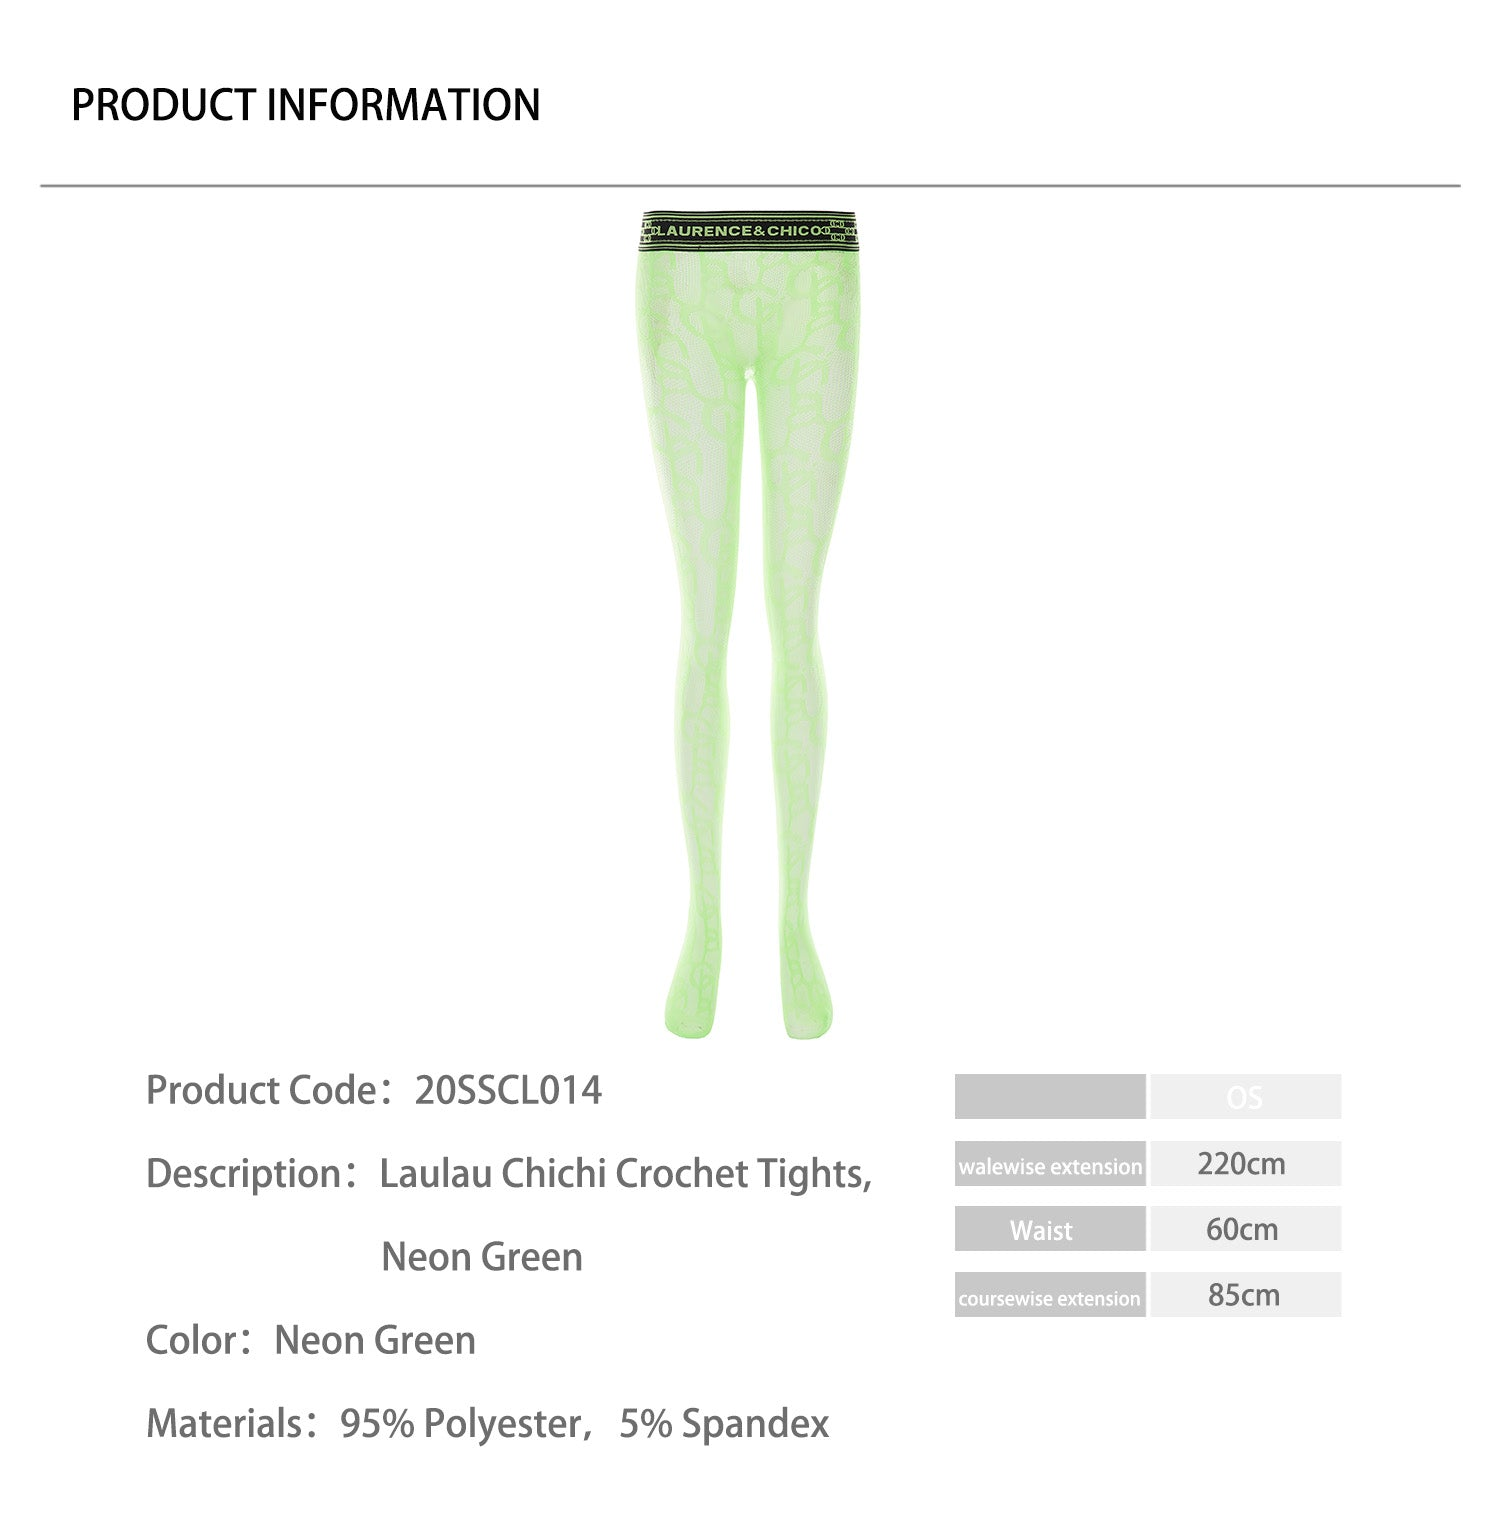 Laulau Chichi Crochet Tights, Neon Green